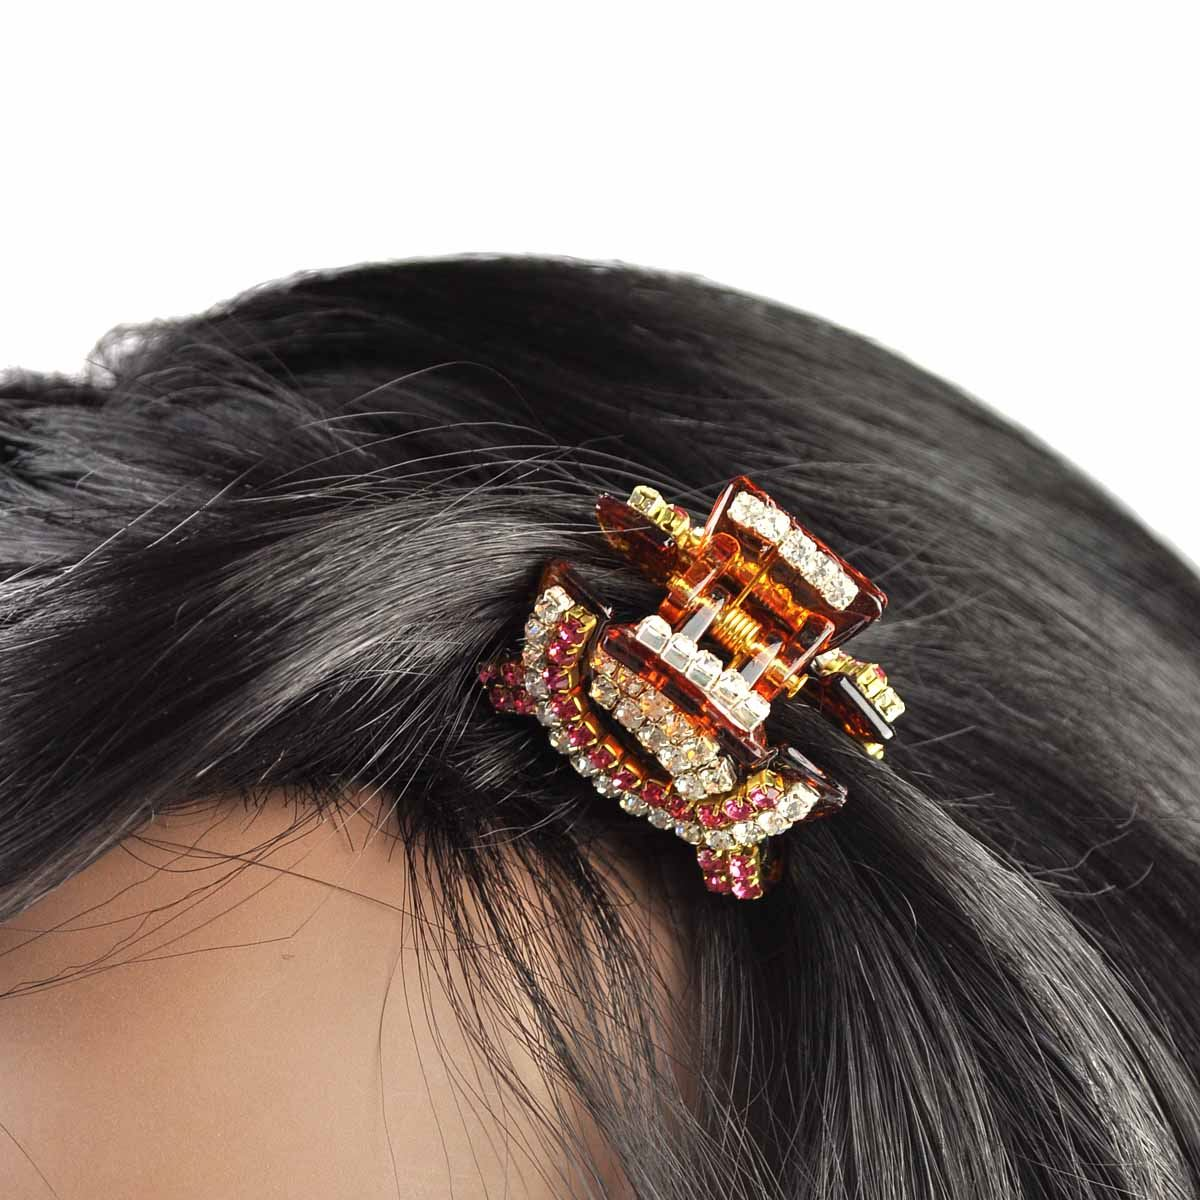 Flower-Shaped Mini Hair Claws Hair Pins Hair Clips For Girls - 10Pcs (Rando. Polytree 6pcs Mini Rhinestone Hairpin Women Girl Hair Clip Pin Claw Barrettes Accessories for Wedding. by Polytree. $ $ 3 22 ($/Gram) FREE Shipping on eligible orders. Product Features.